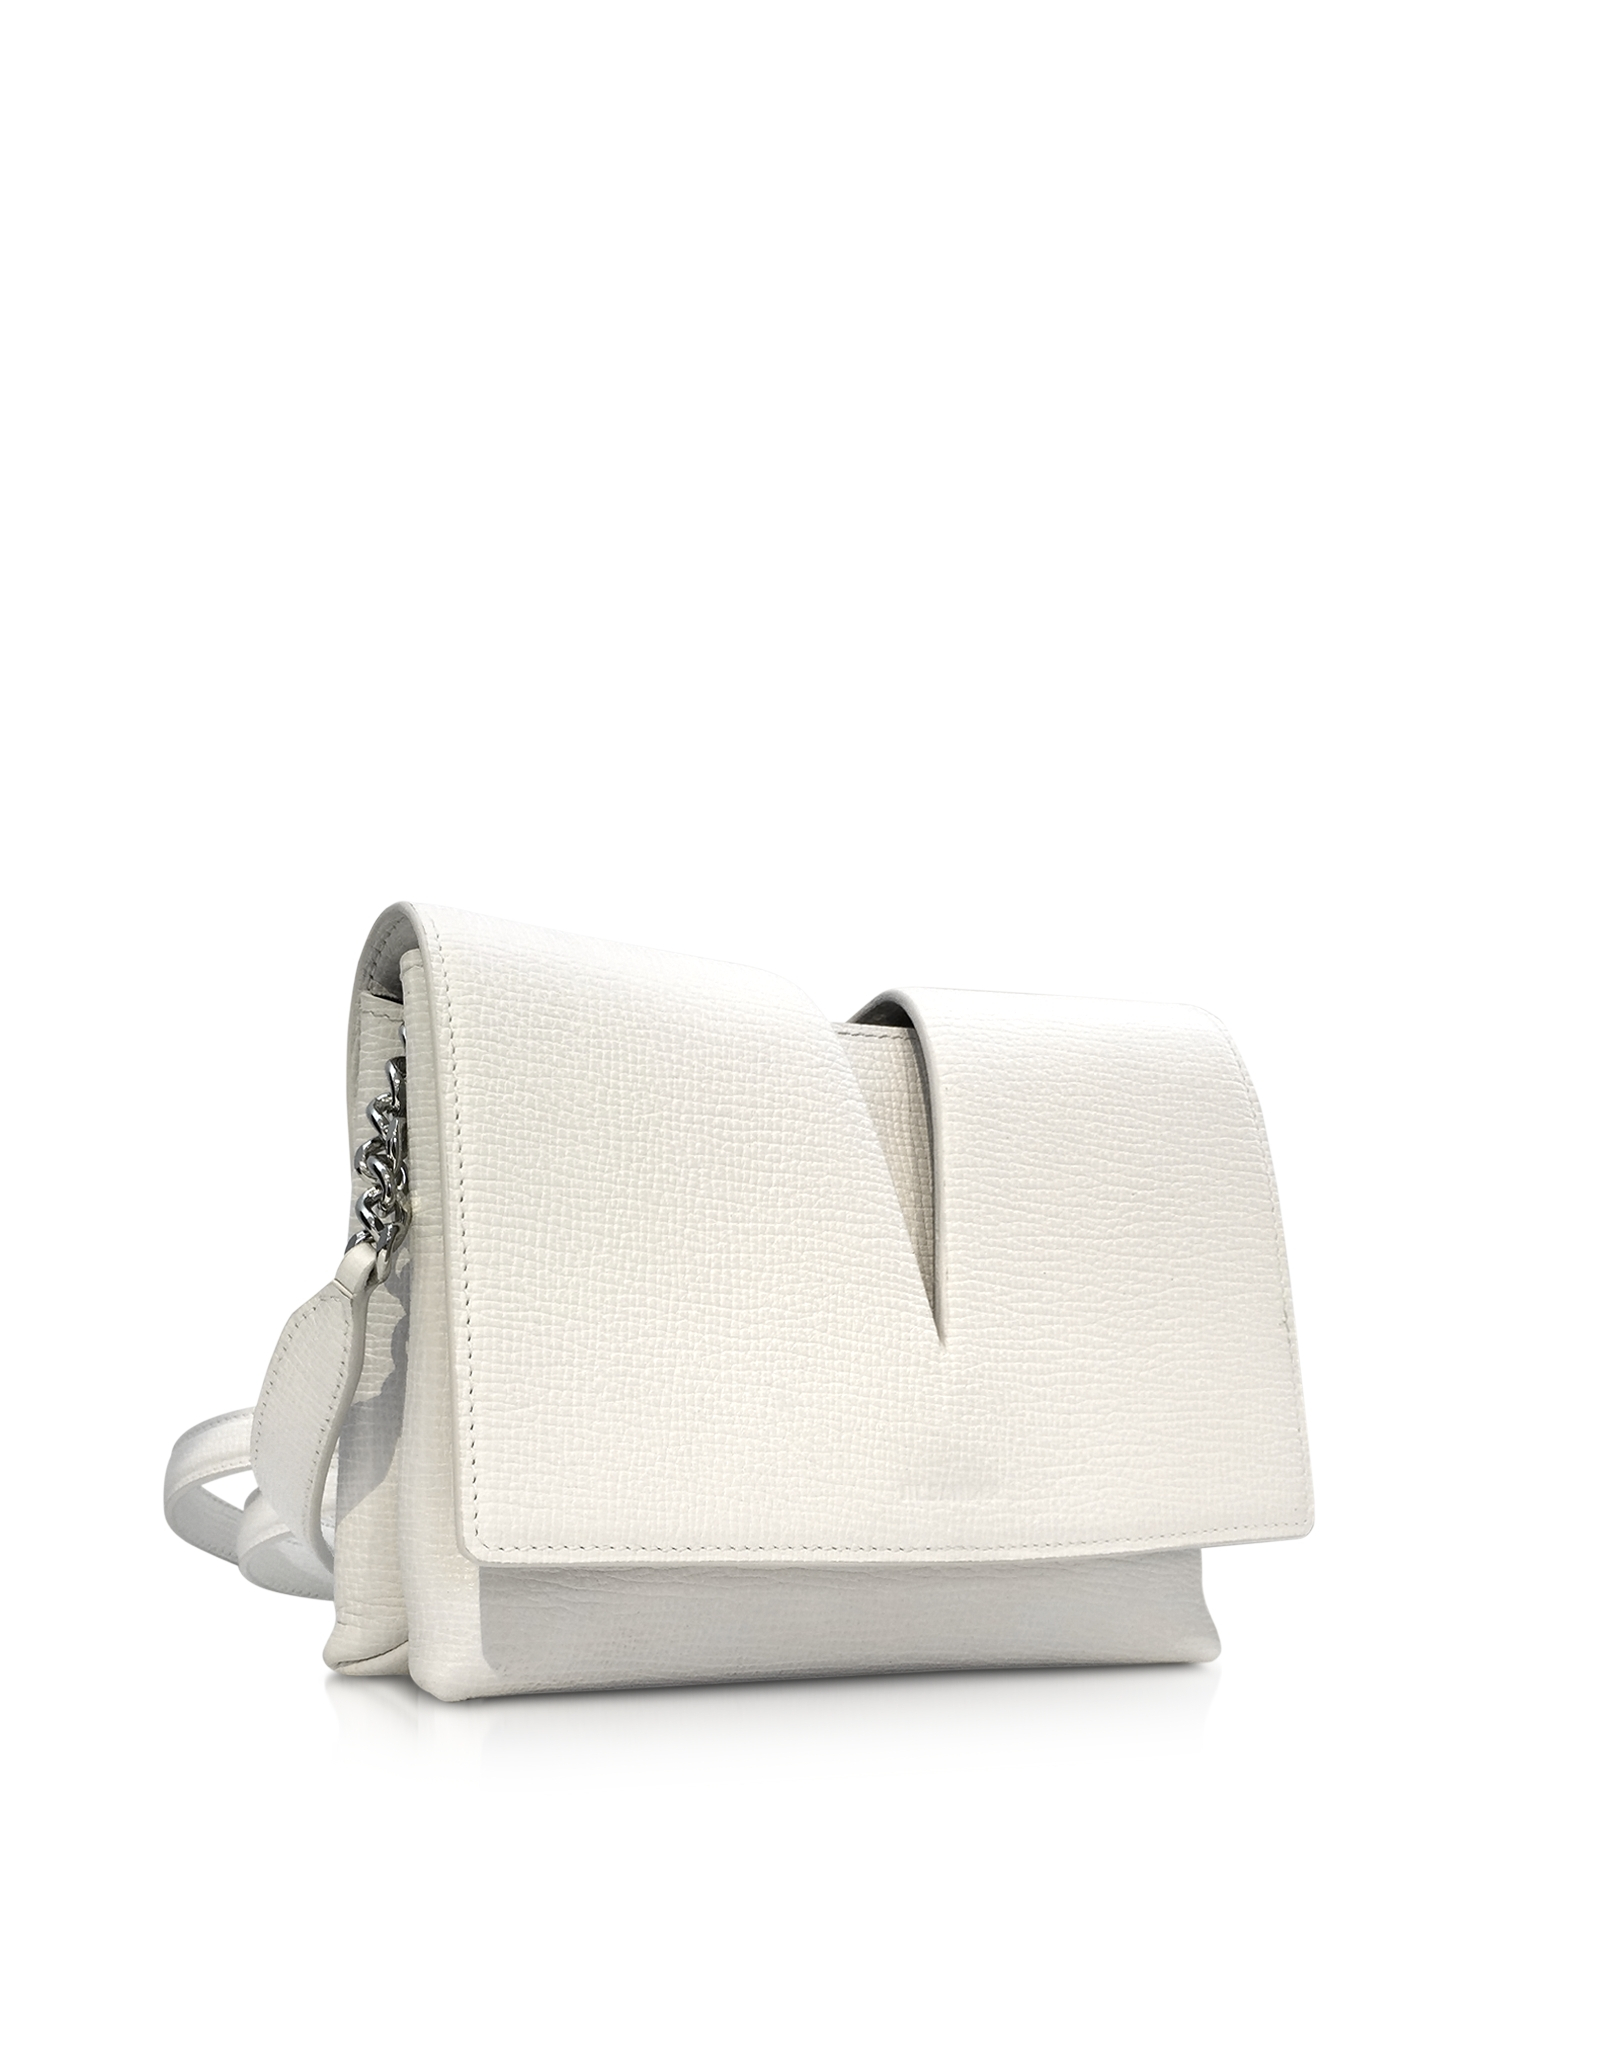 Jil sander View Small White Leather Shoulder Bag in White | Lyst